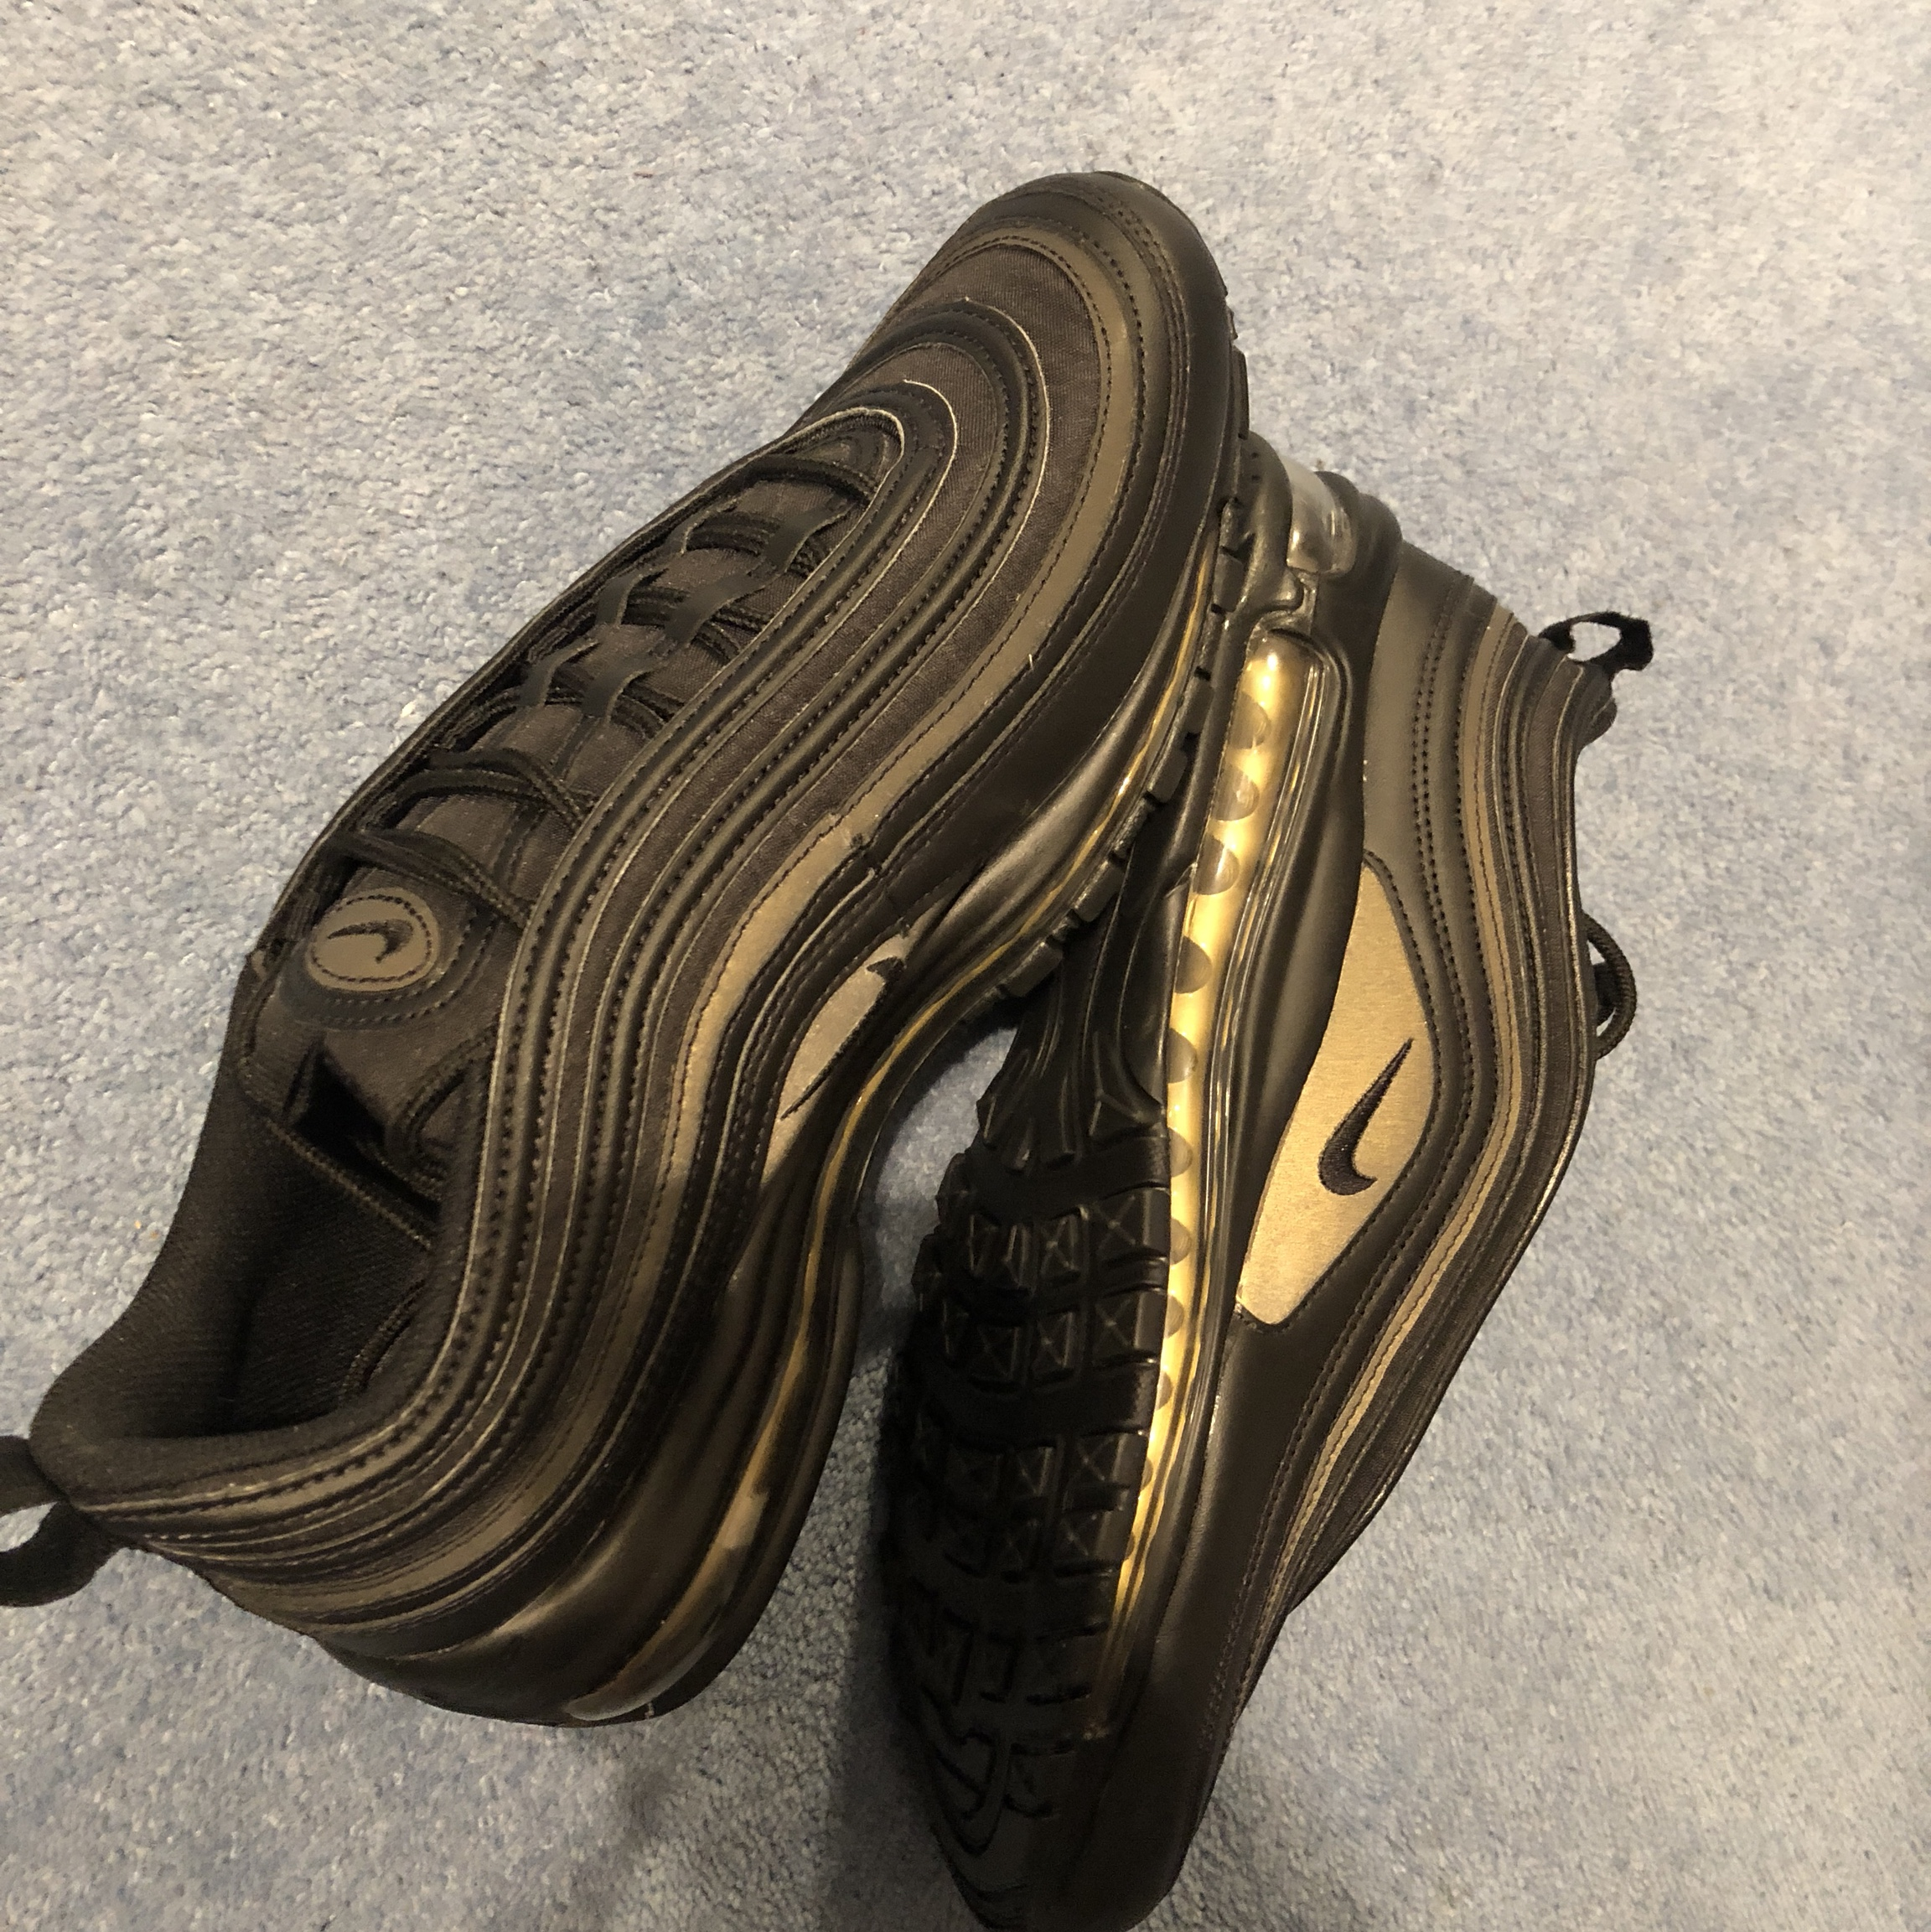 Nike Air Max 97 Triple Black Gold Reflective